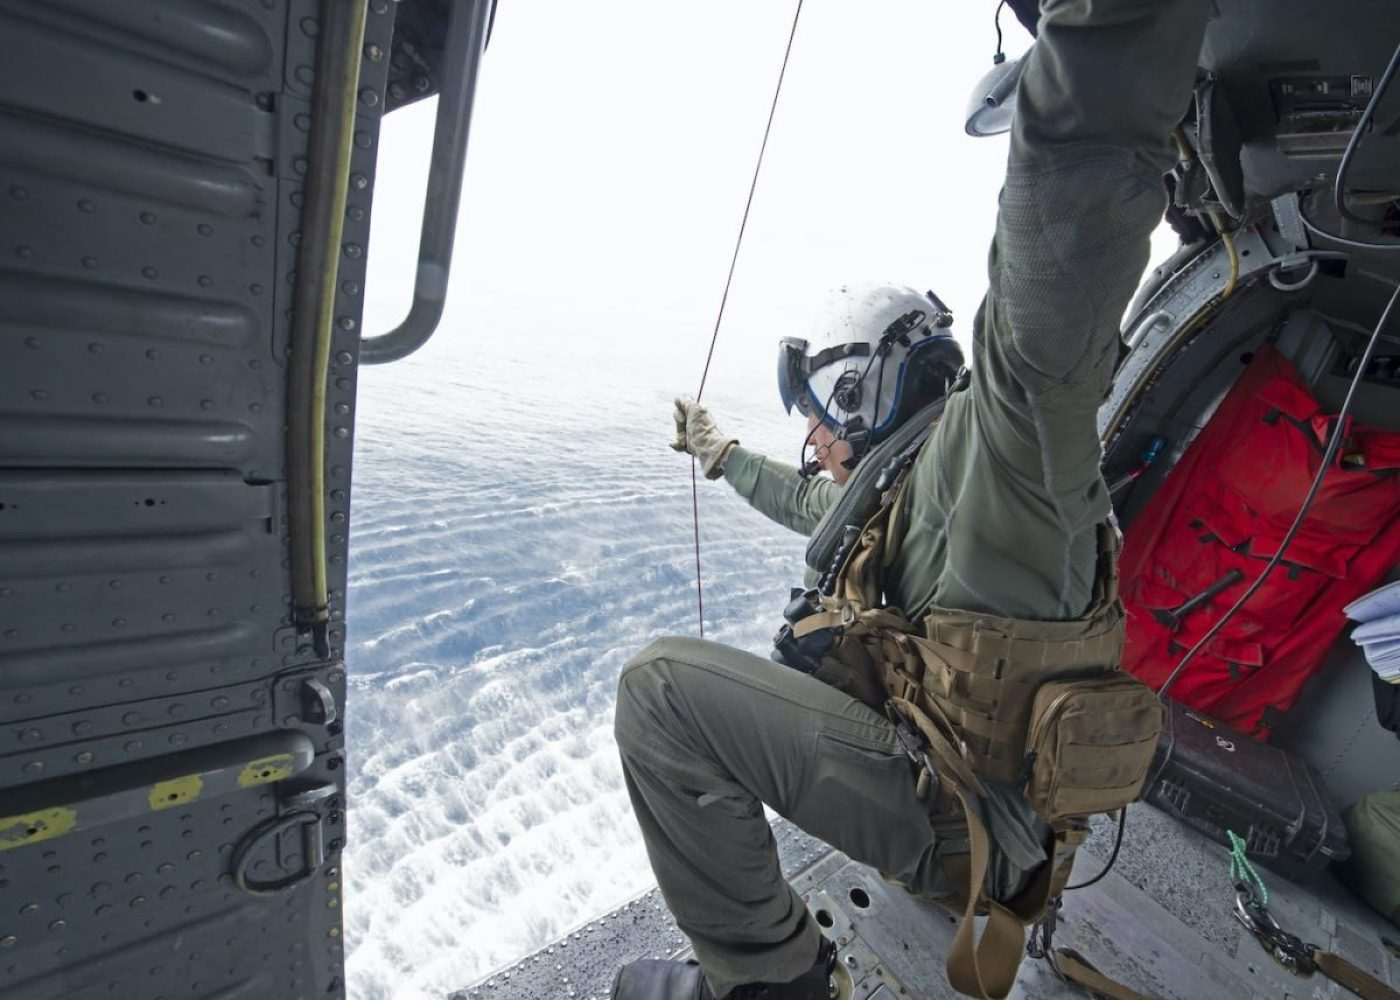 """Naval Aircrewman 2nd Class David Quadra, assigned to the """"Wildcards"""" of Helicopter Sea Combat Squadron (HSC) 23, attached to the Independence-variant littoral combat ship USS Gabrielle Giffords (LCS 10), lowers a life vest from an MH-60S Sea Hawk helicopter during a simulated search and rescue exercise, June 16, 2020. (U.S. Navy photo by Mass Communication Specialist 2nd Class Brenton Poyser)"""